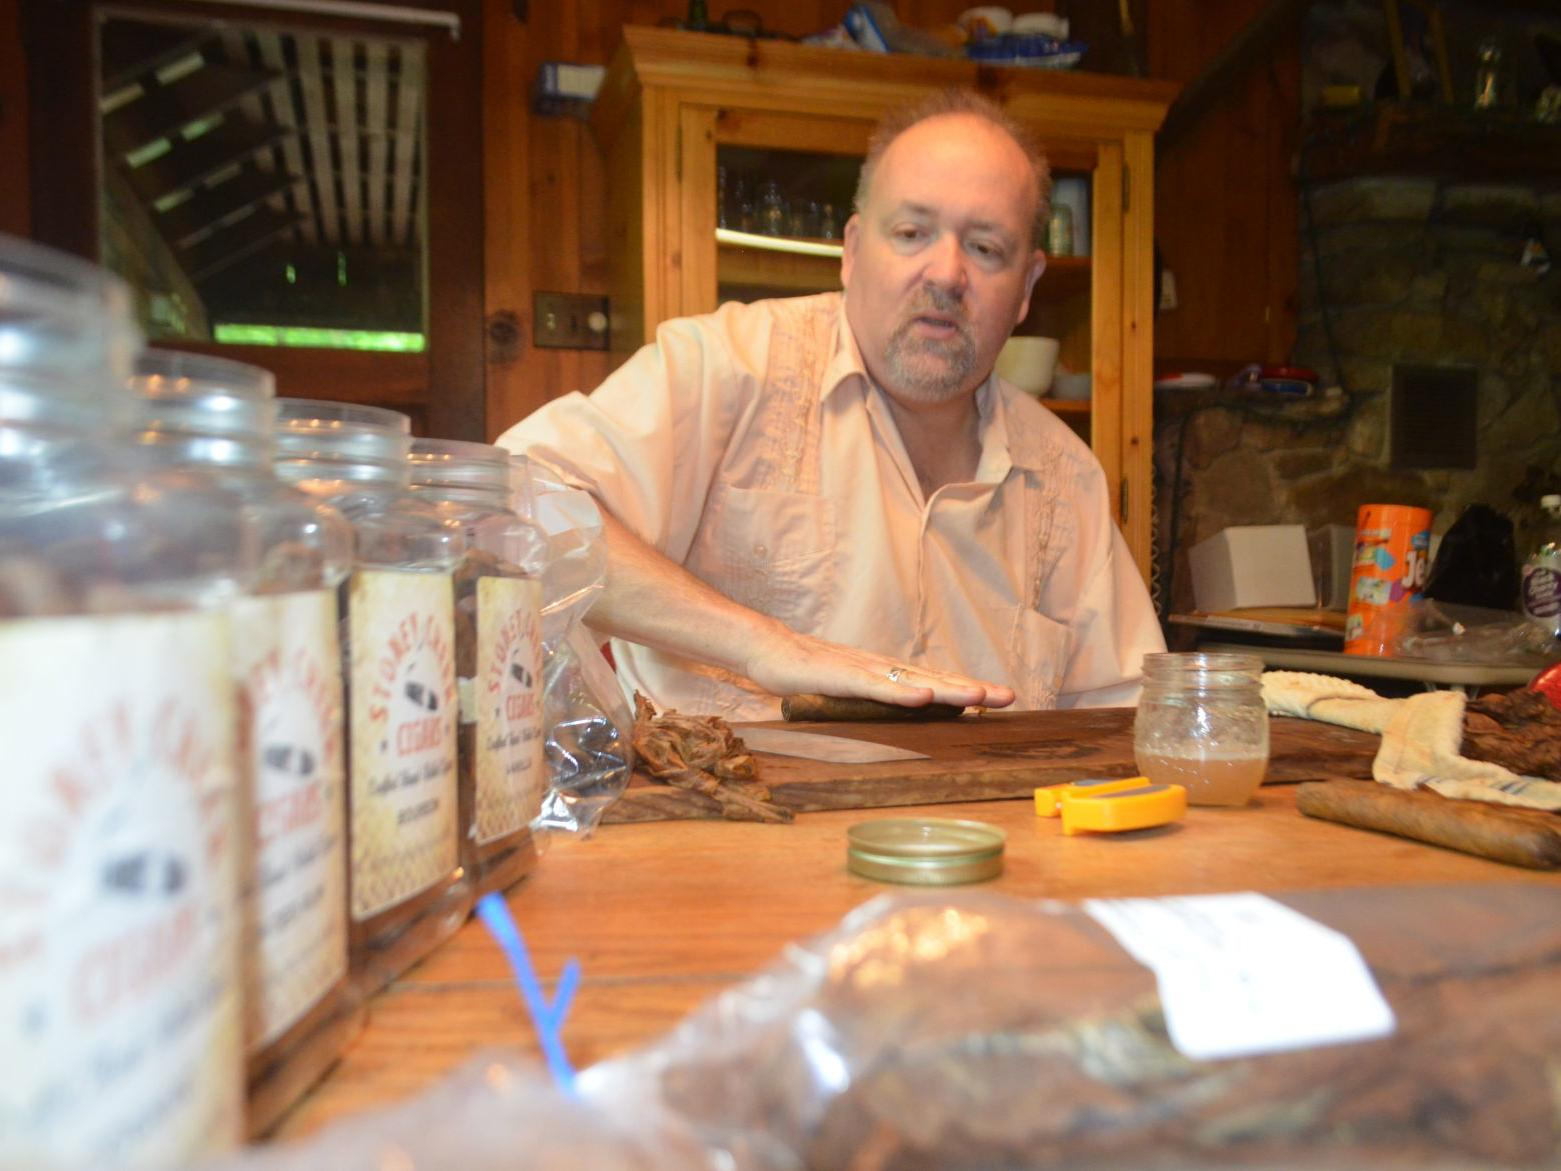 Rolling To Success Morgantown Pair Infuse Hand Made Cigars With Mountain State Flavor Wv News Wvnews Com